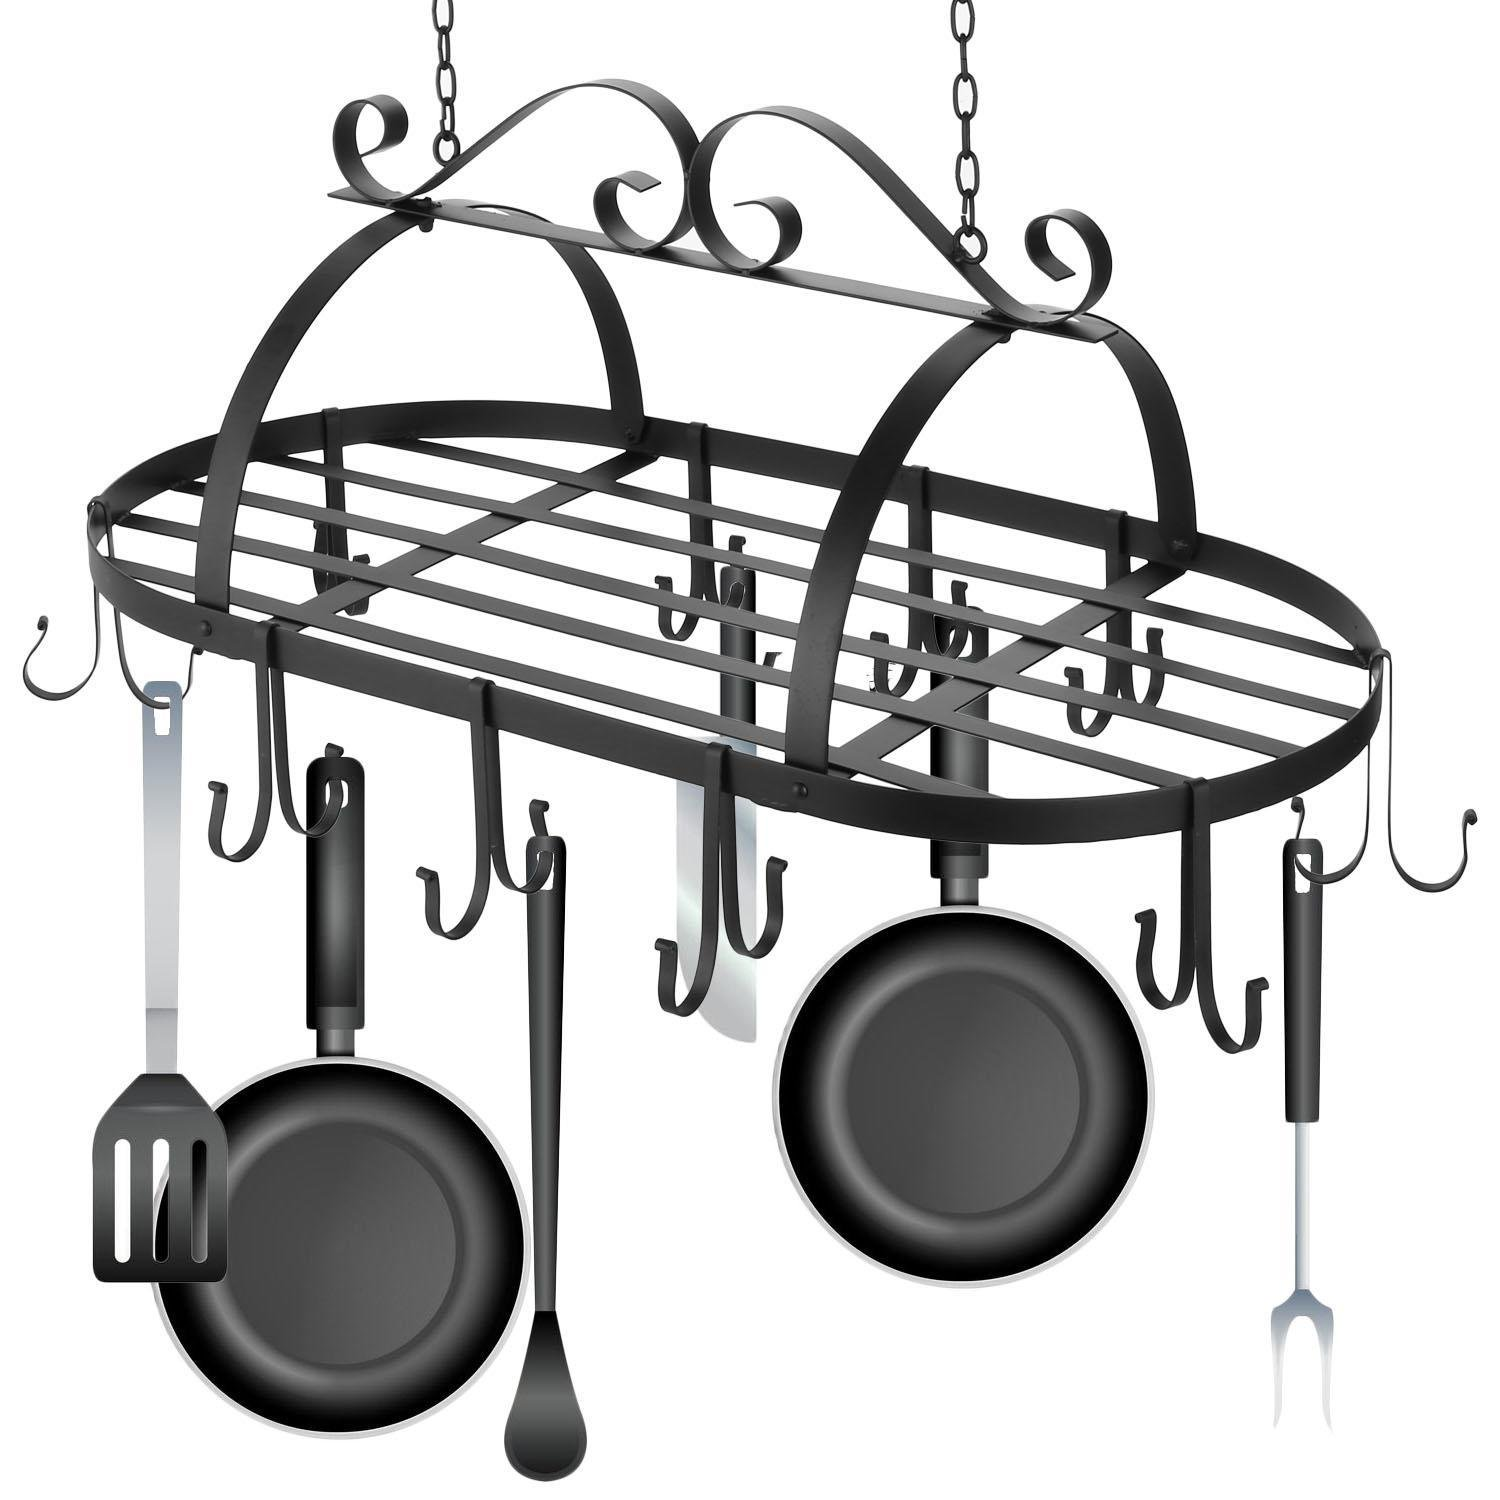 Ferty Kitchen Ceiling Mounted Oval Iron Hanging Pots Holder Pans Hanger Kitchen Storage Utility Cookware Hook Rack